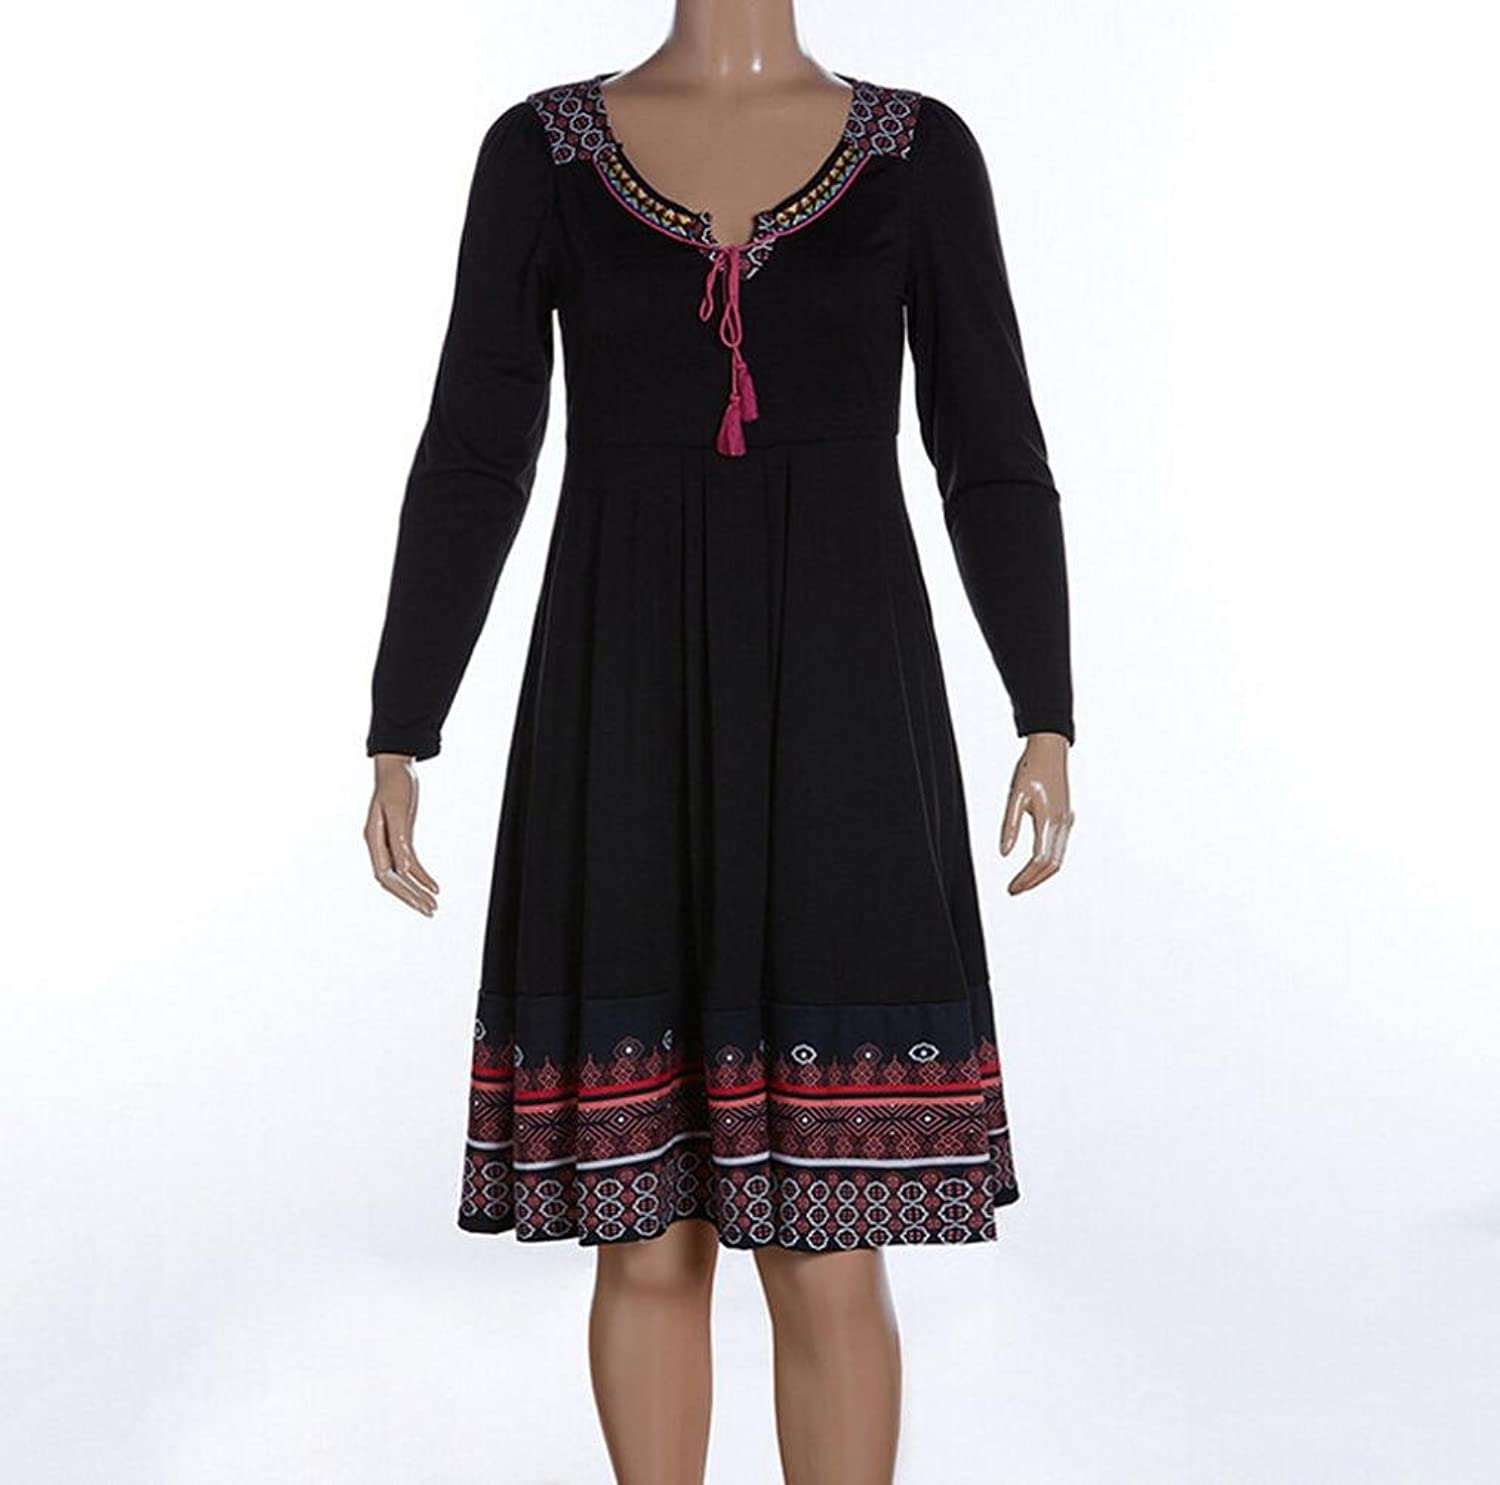 Dress, Orangeskycn Women Embroidery Plus Size Dresses Cotton Retro Long Sleeve Strap Dress at Amazon Womens Clothing store: